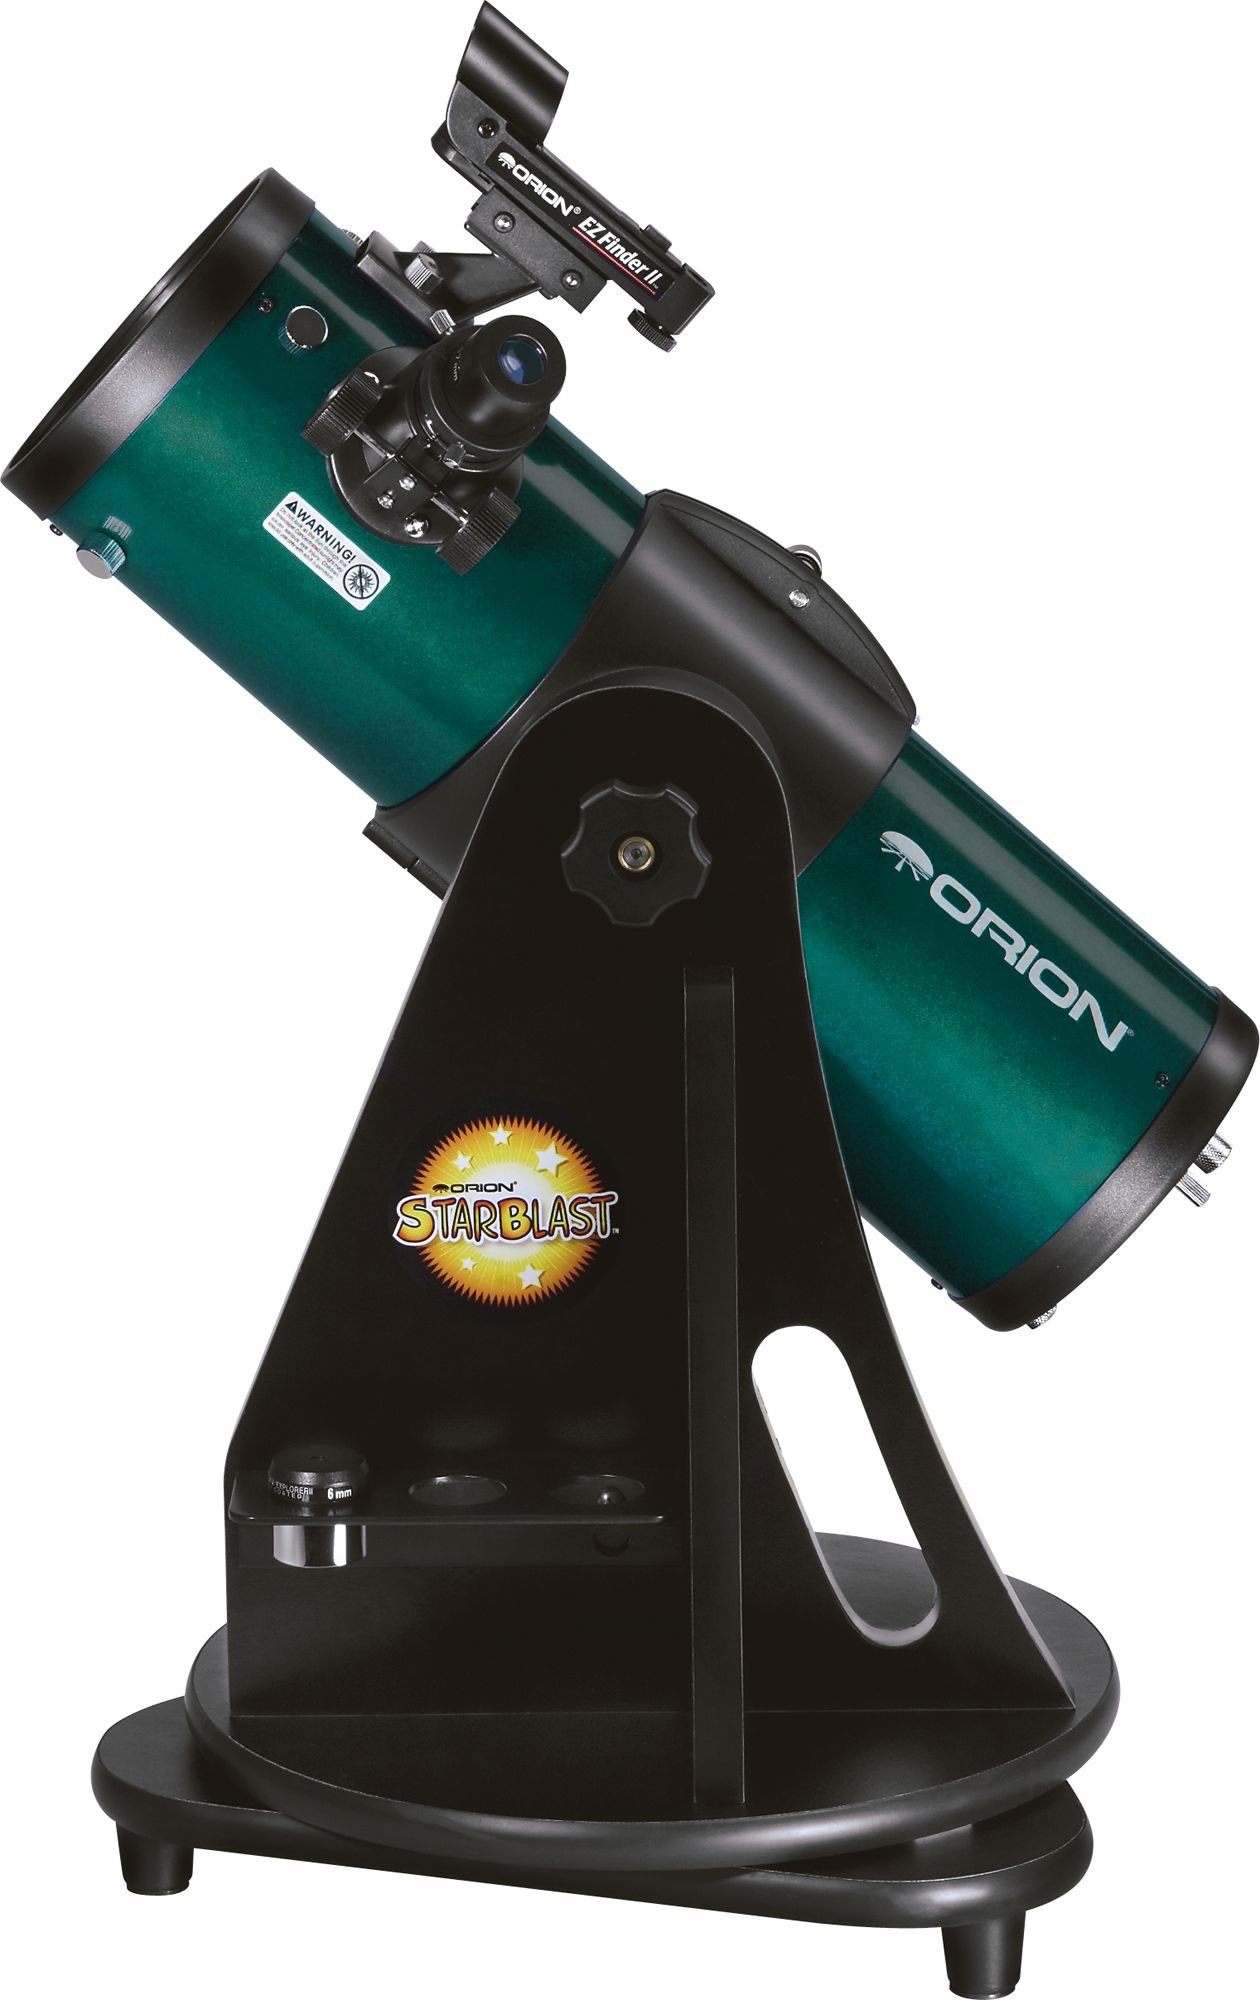 Orion StarBlast 4.5 Astro Reflector Telescope Kit by Orion (Image #4)